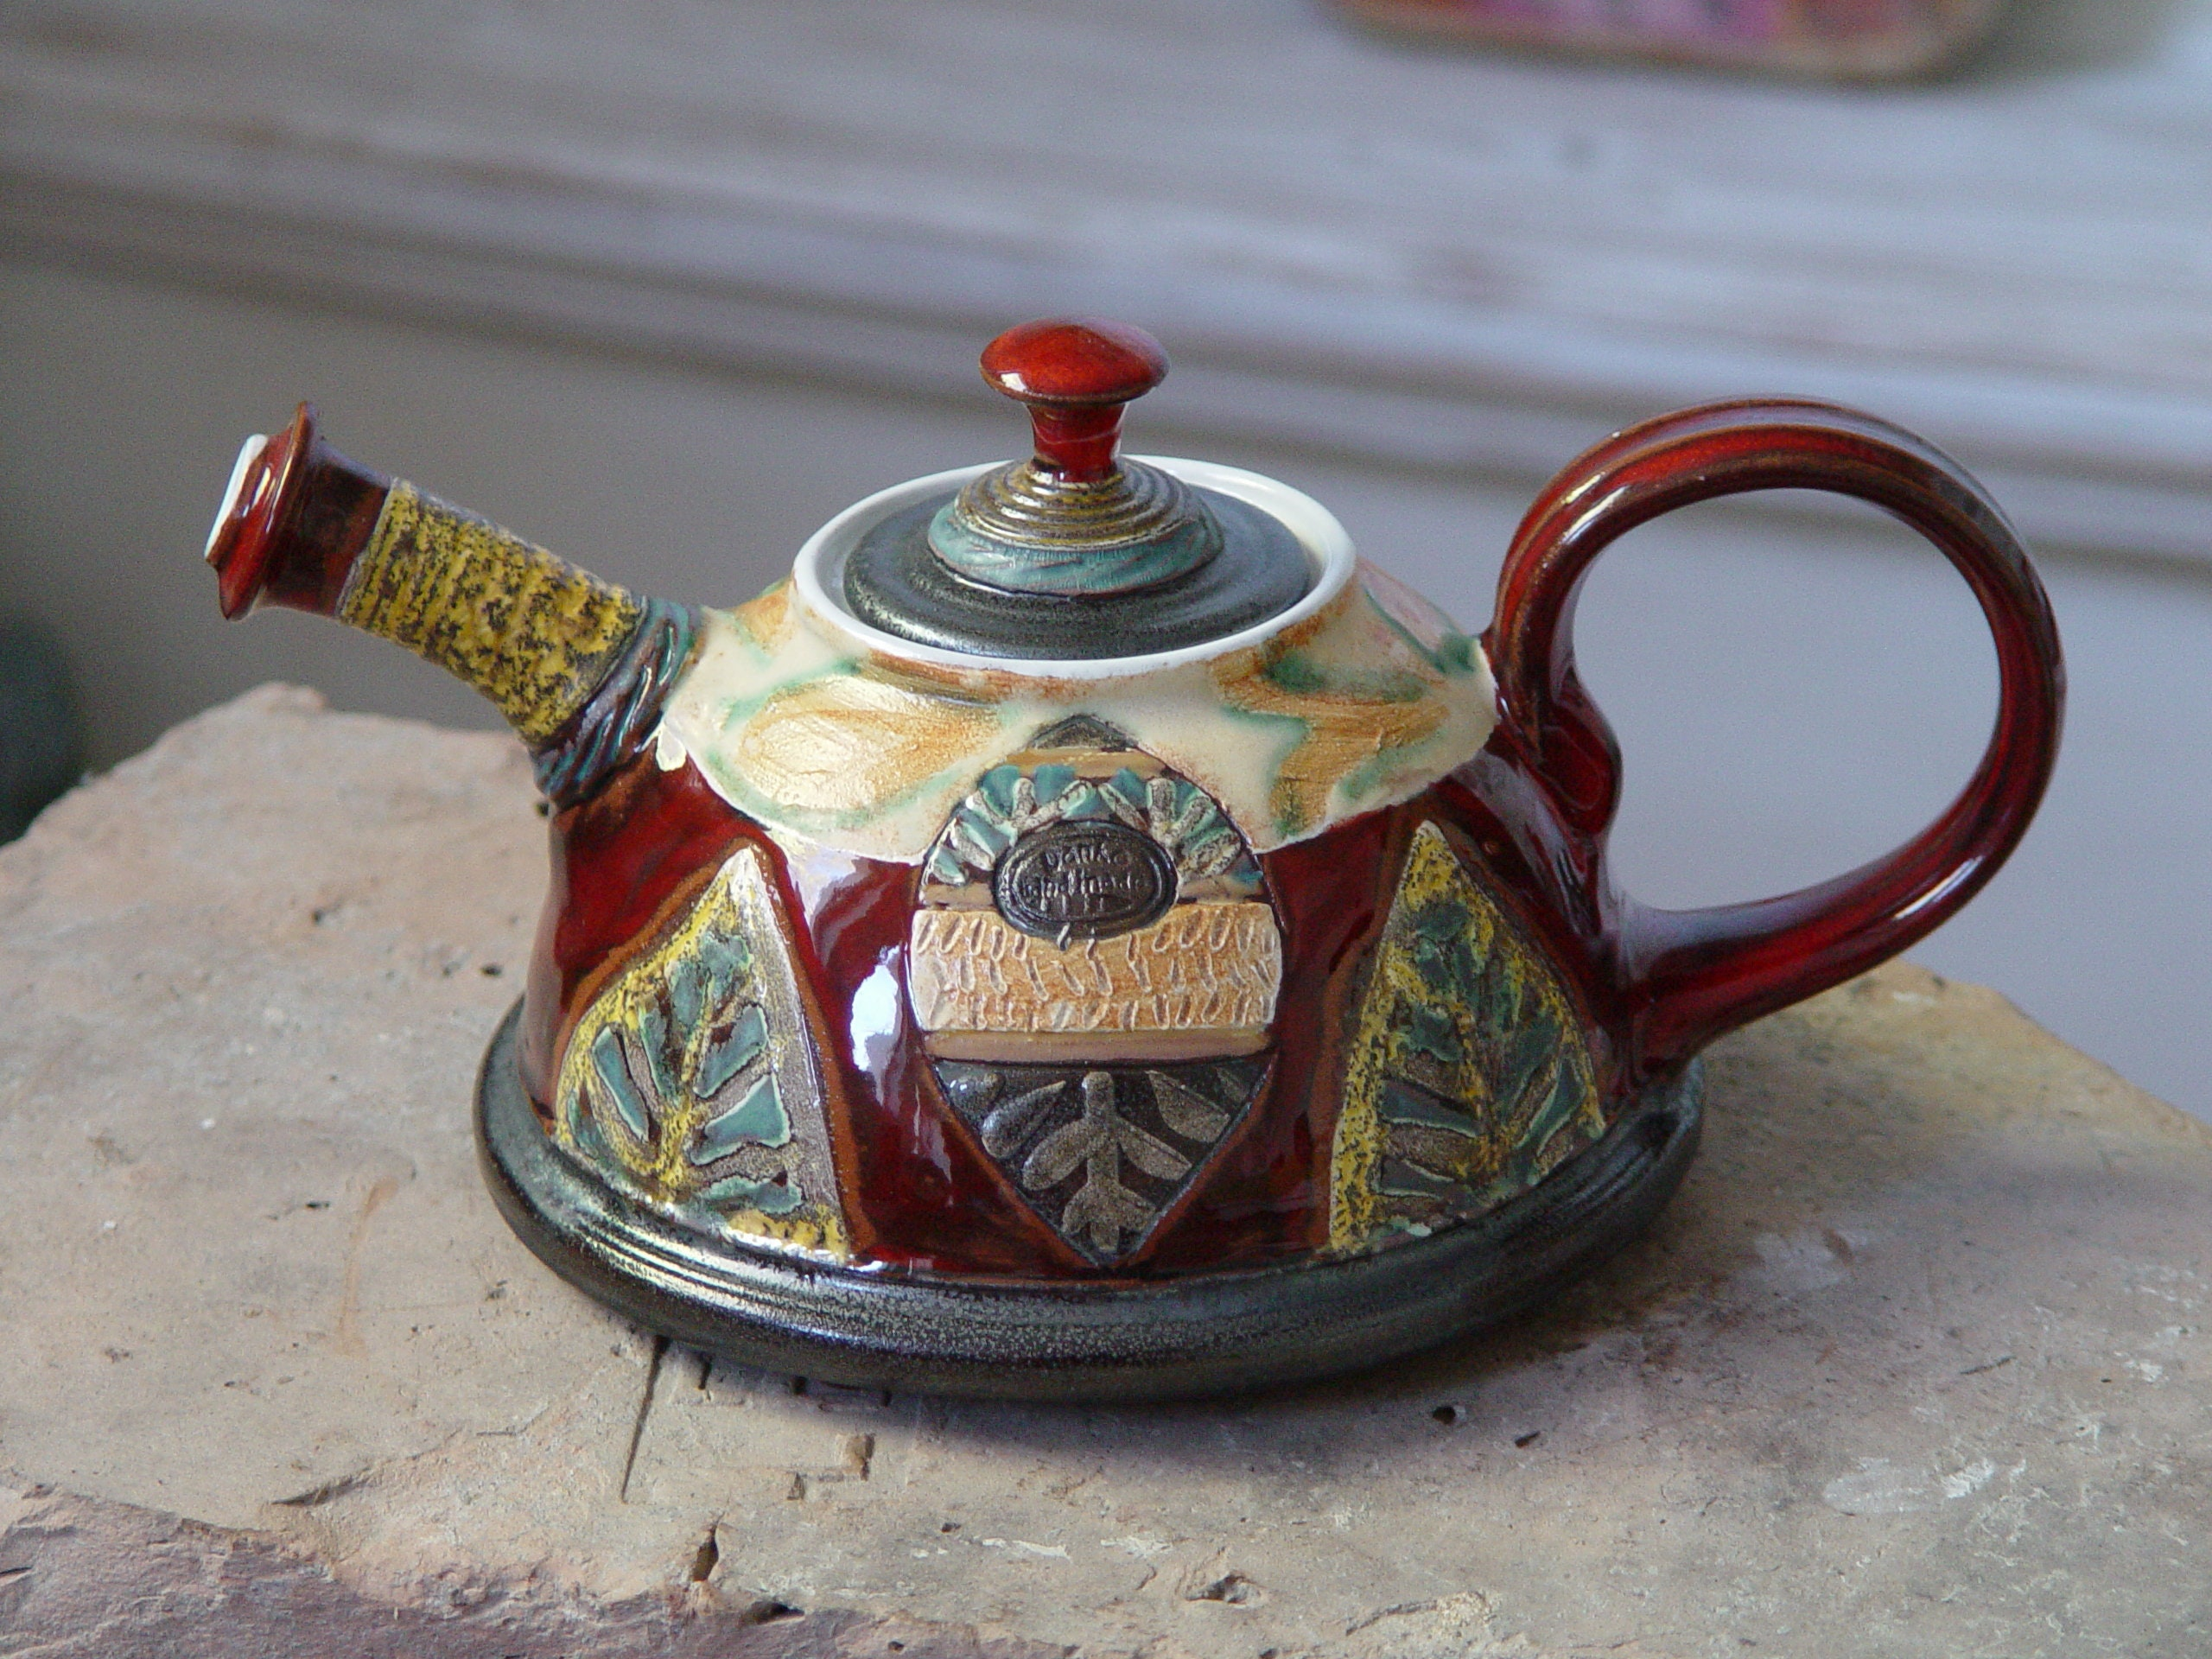 Pottery Wedding Gifts: Wheel Thrown Anniversary Gift Teapot Wedding Gift Pottery